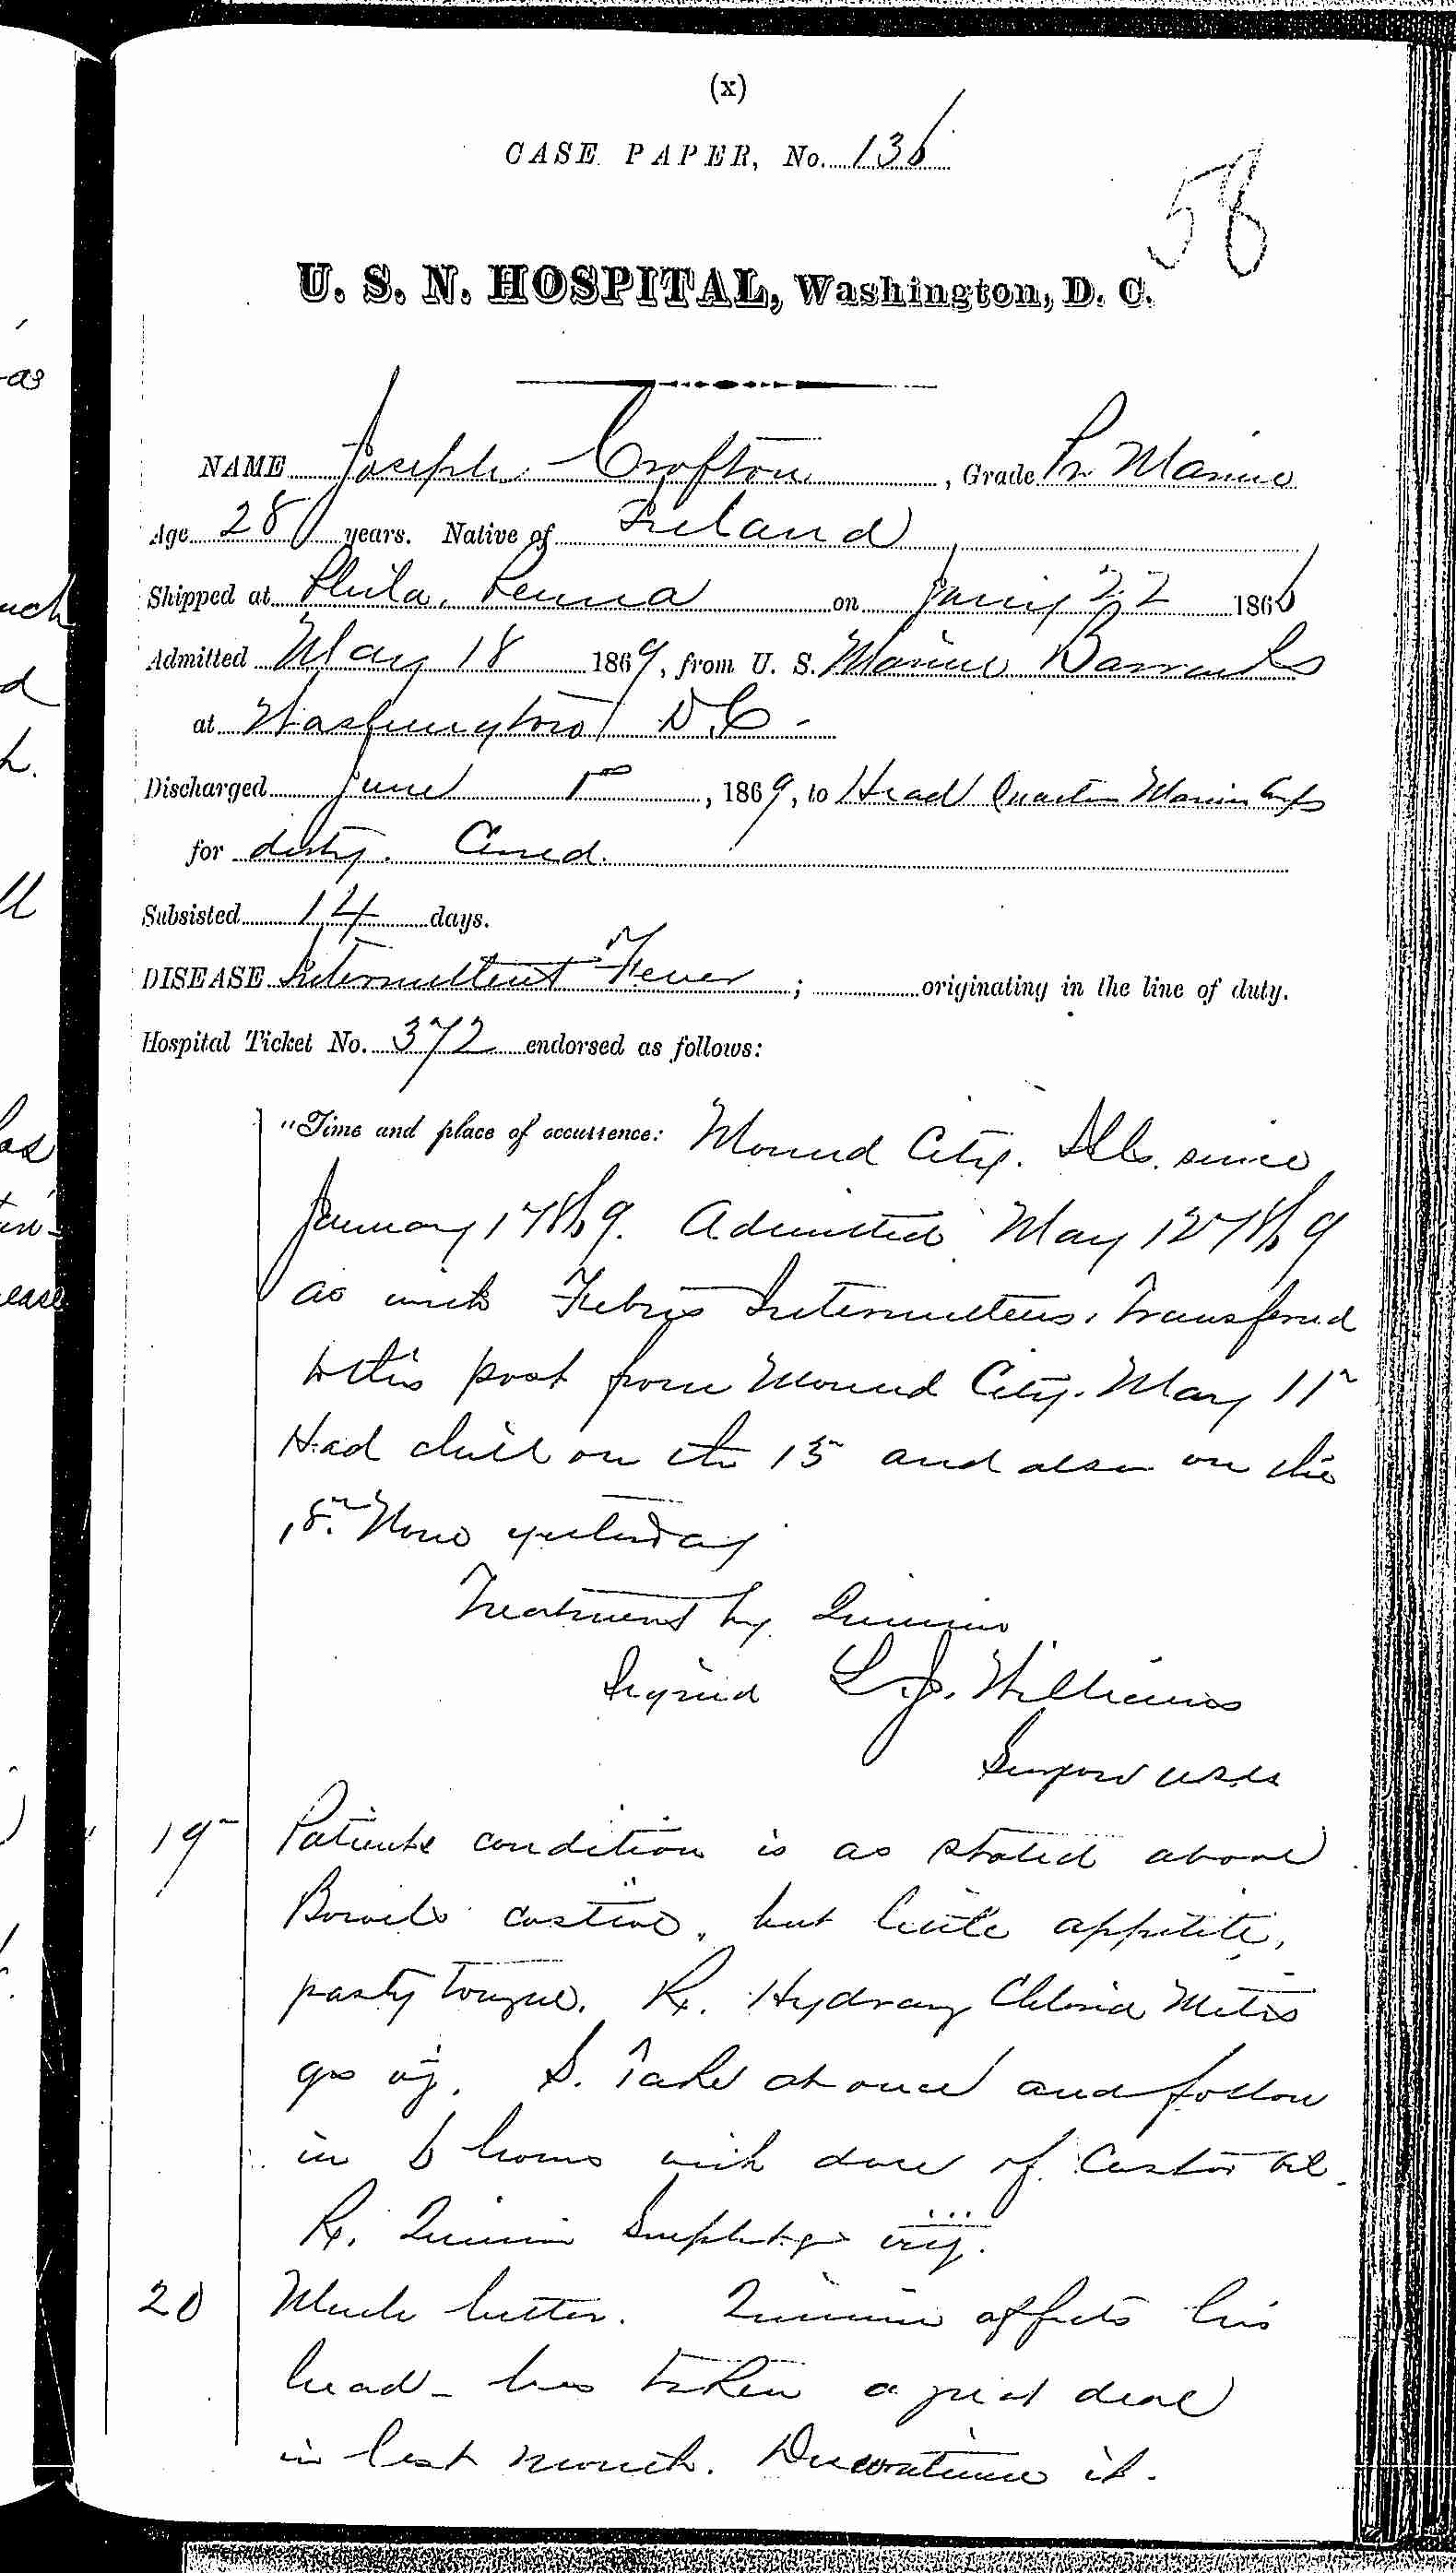 Entry for Joseph Crofton (page 1 of 2) in the log Hospital Tickets and Case Papers - Naval Hospital - Washington, D.C. - 1868-69